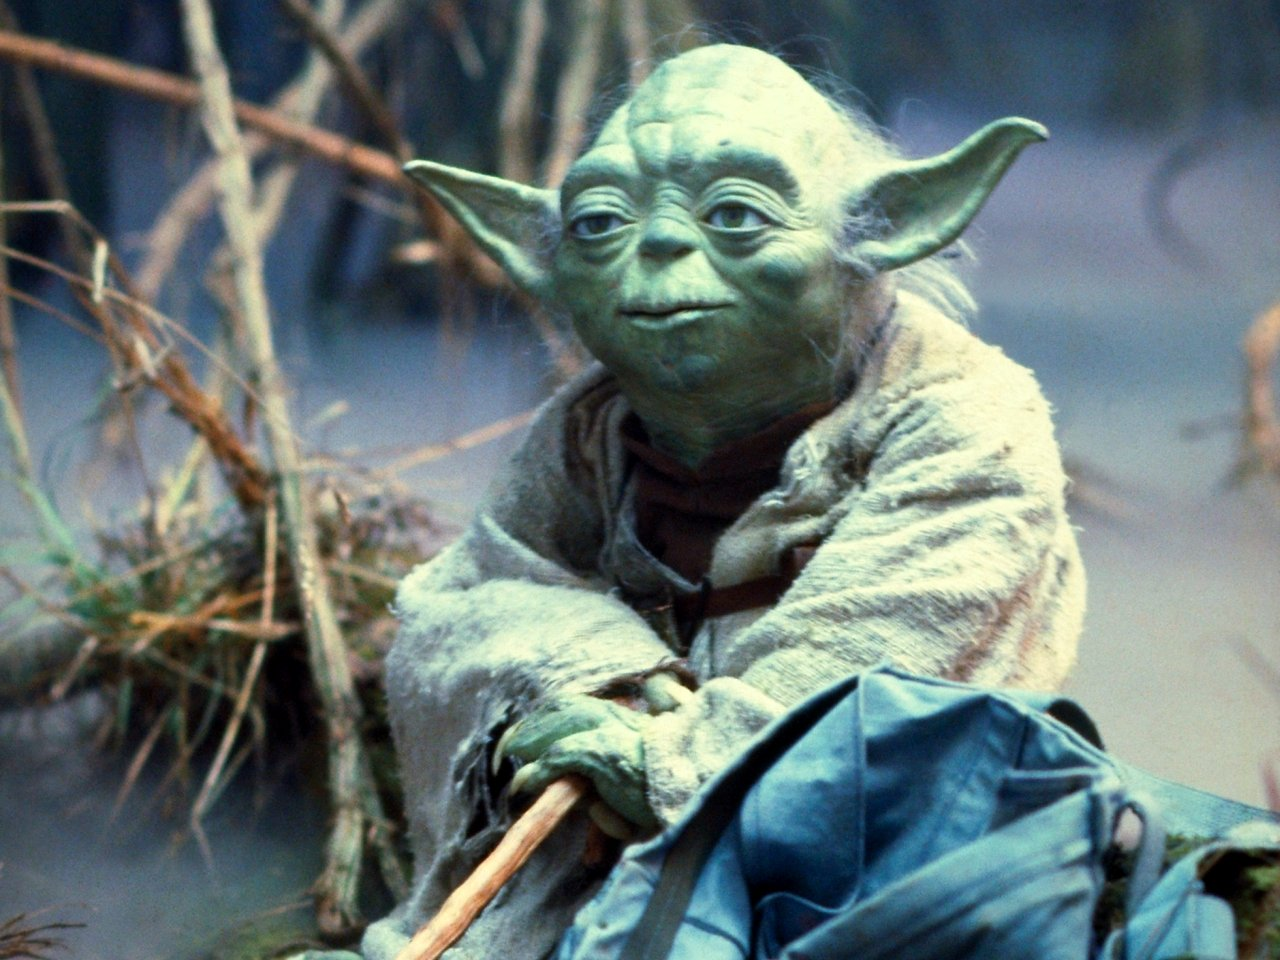 It is the only Star Wars series film in which Jedi Master Yoda does not make an appearance.